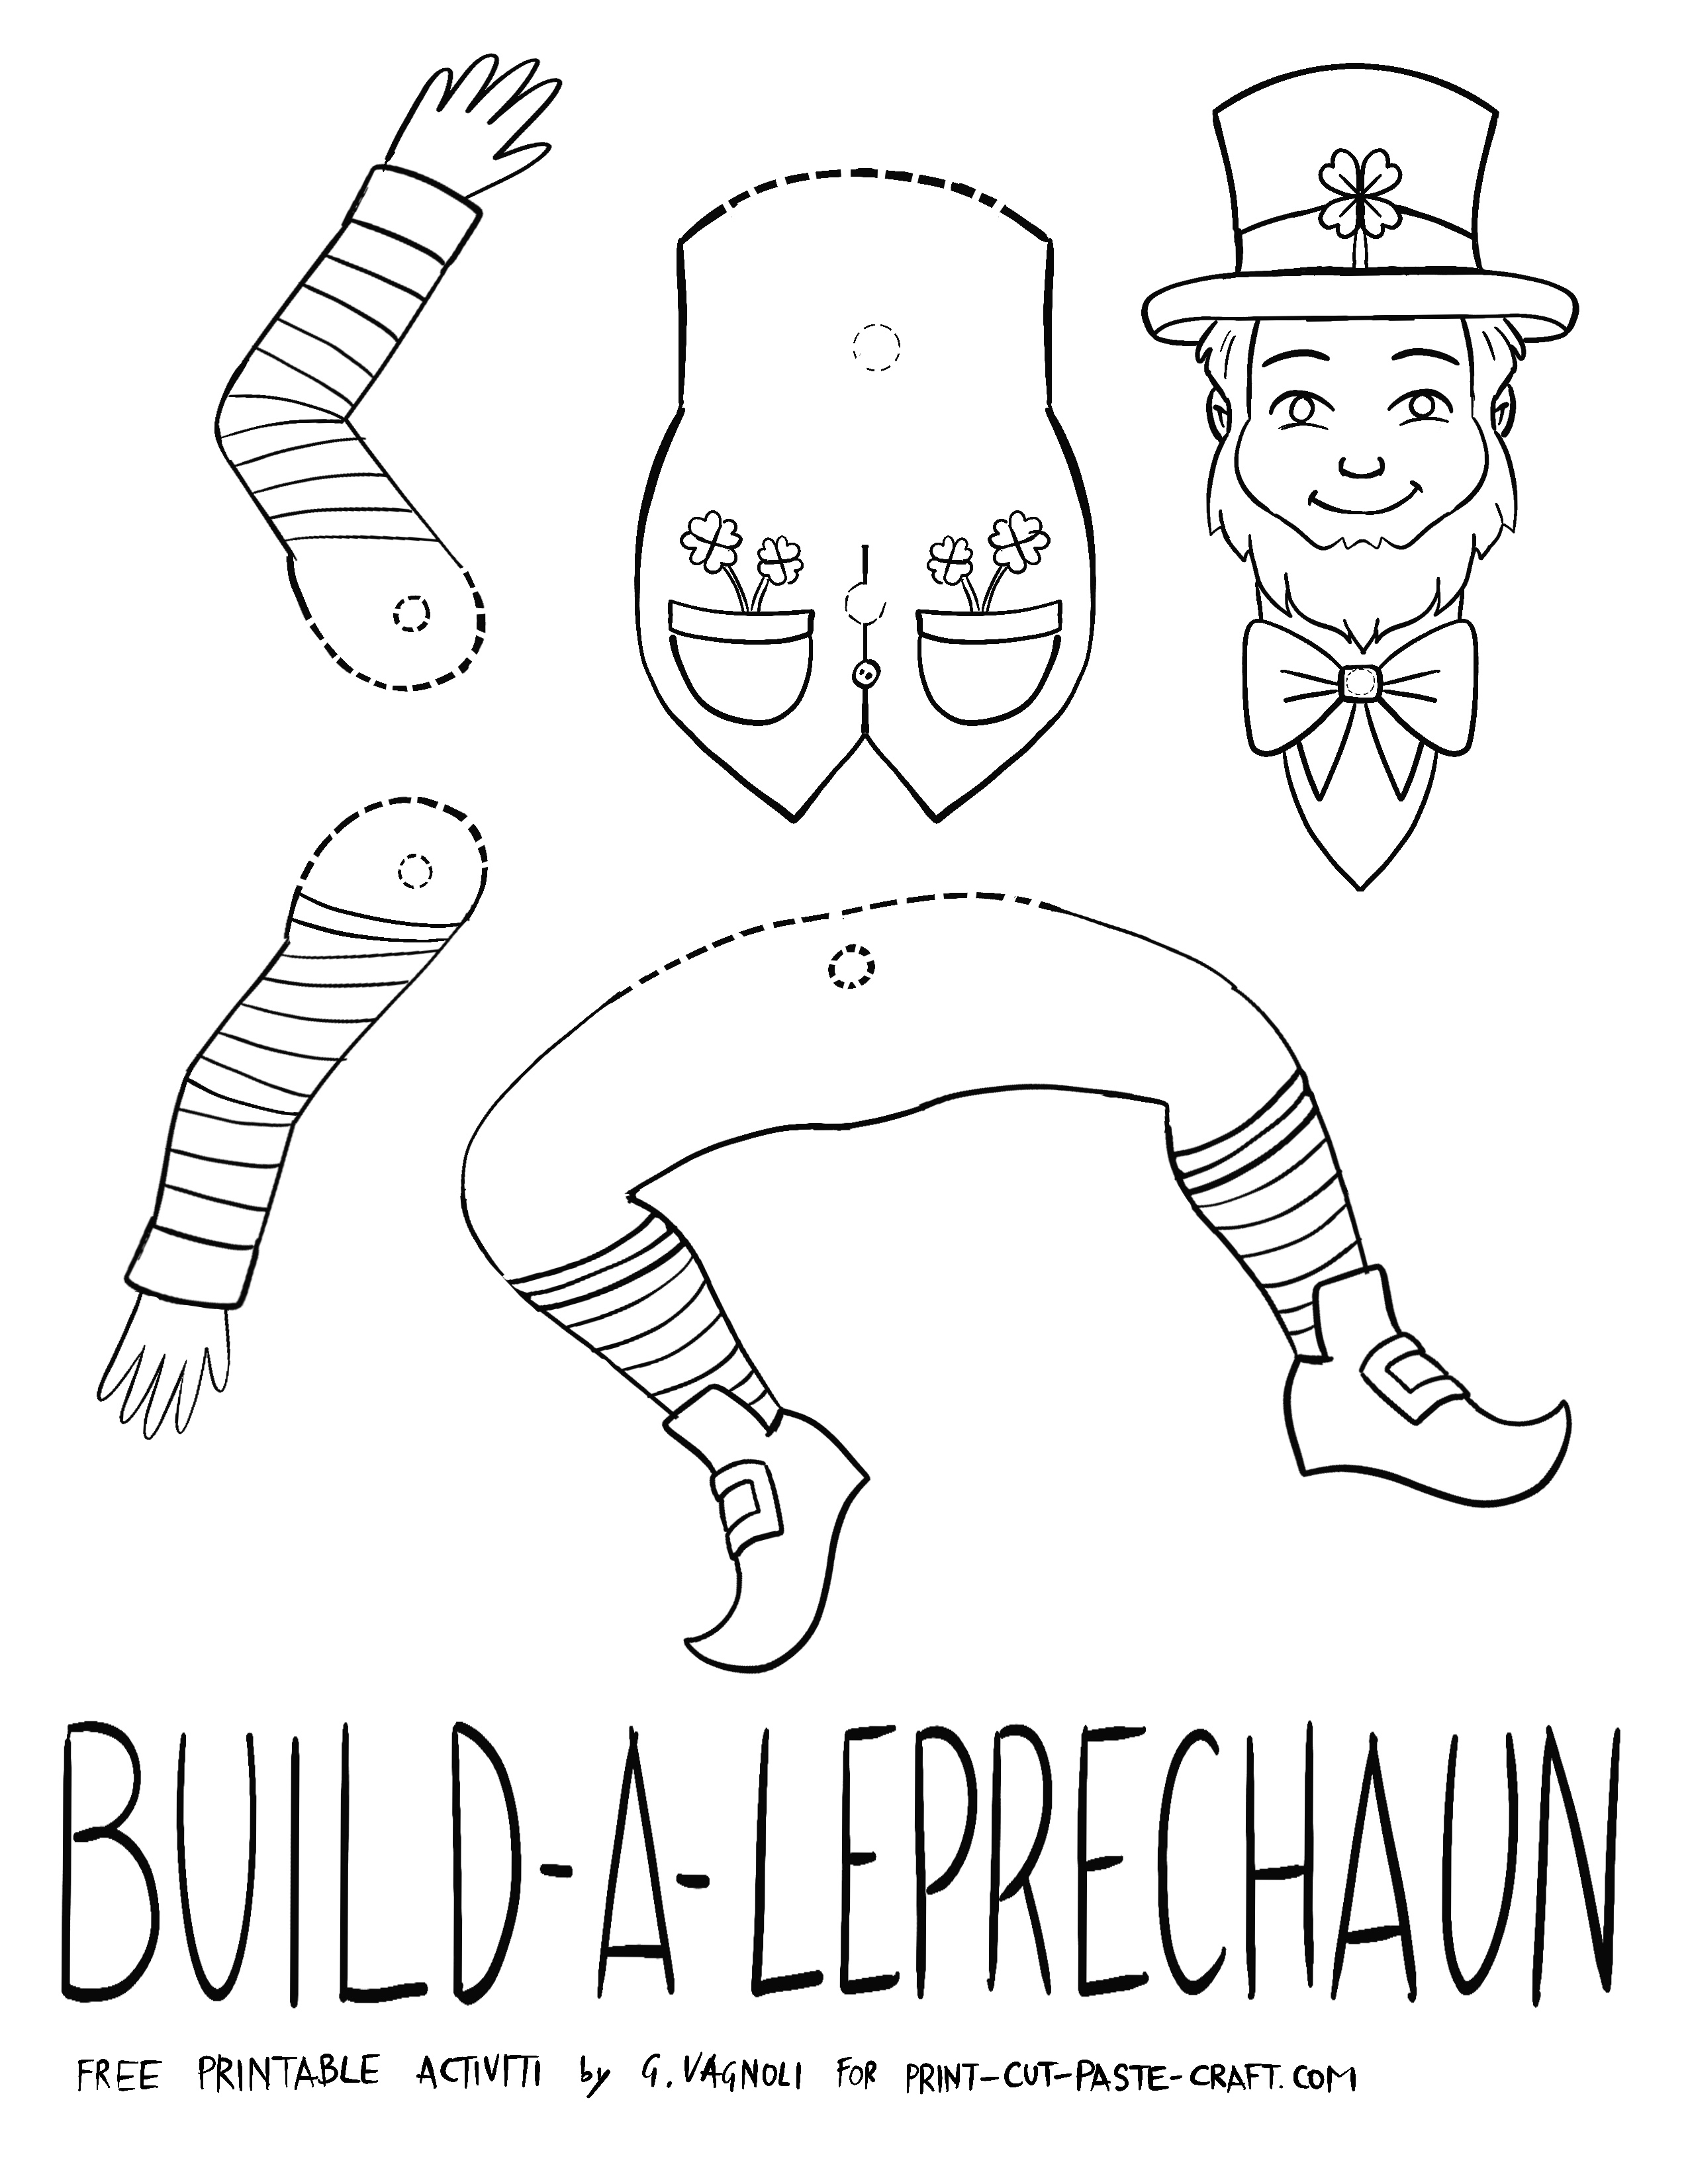 Build a Leprechaun Free Printable Activity by Gabriella Vagnoli for print-cut-paste-craft.com